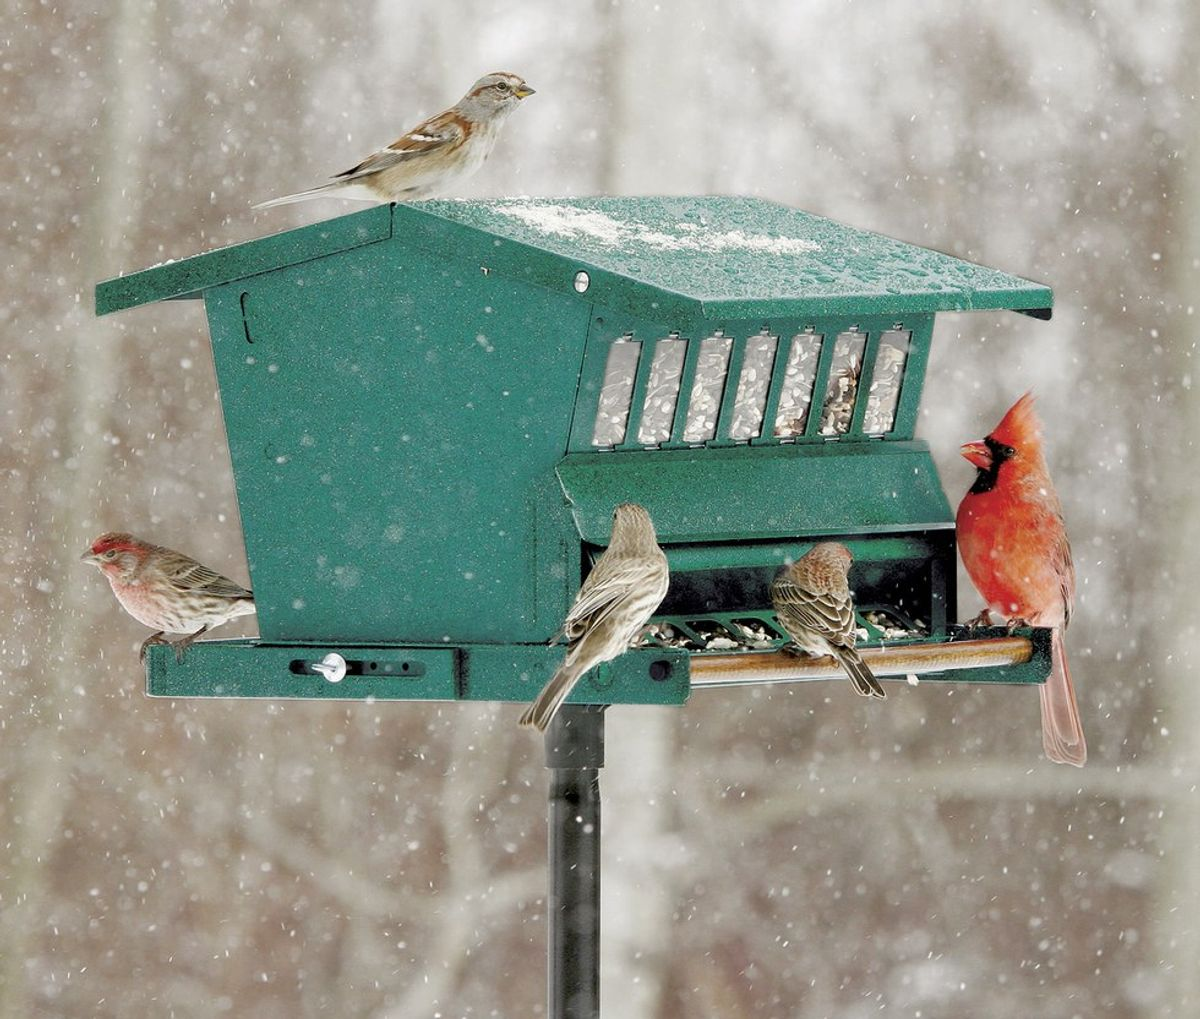 How To Choose The Right Birdfeeder